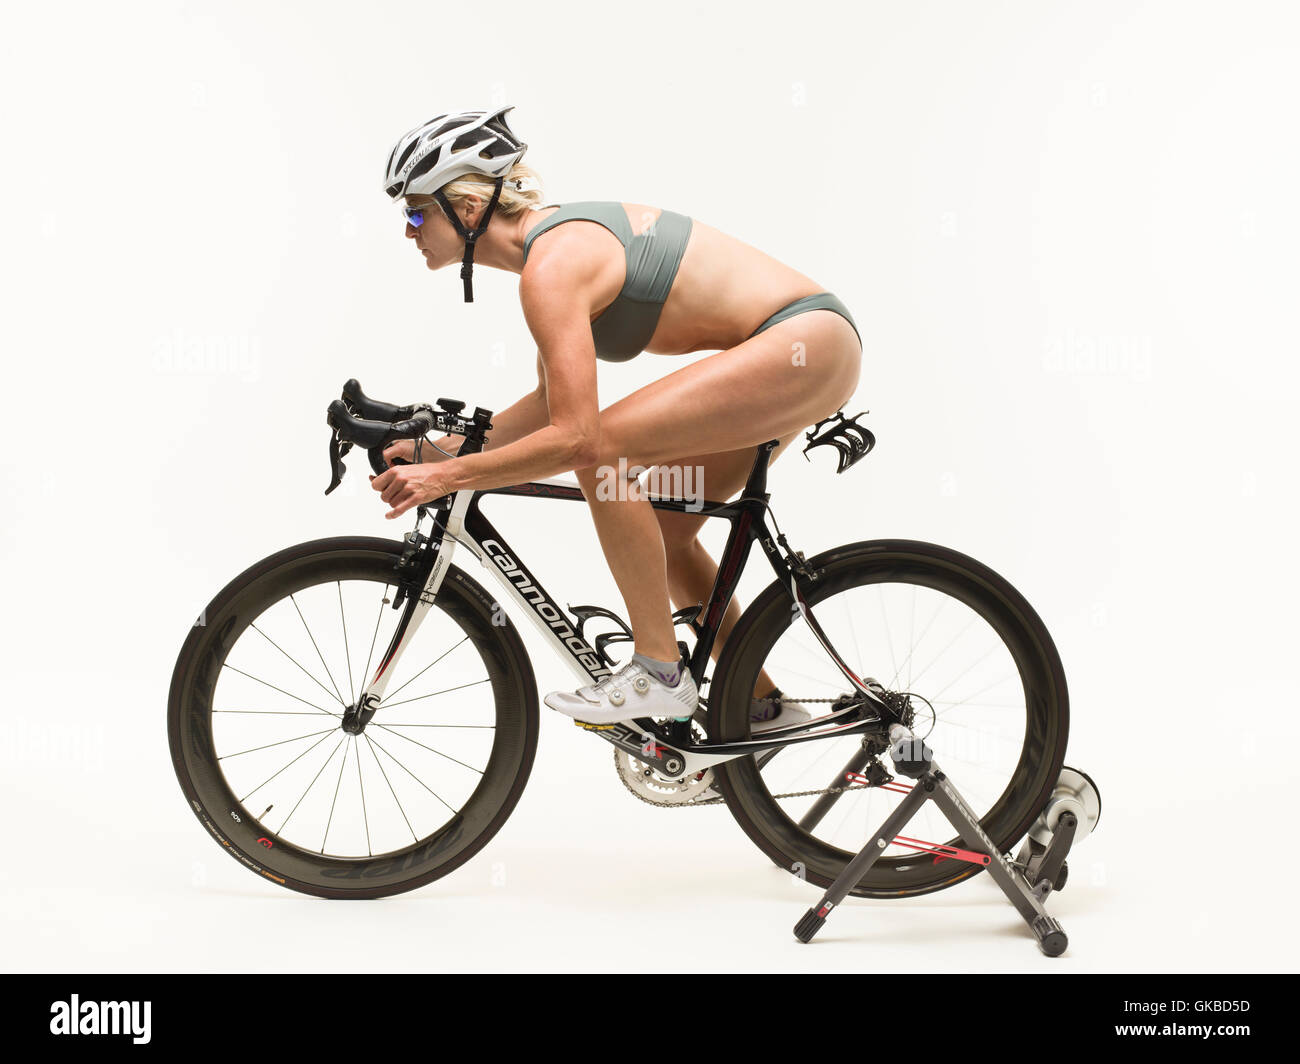 Woman riding her bike on a stationary stand in studio, Virginia Beach, VA - Stock Image